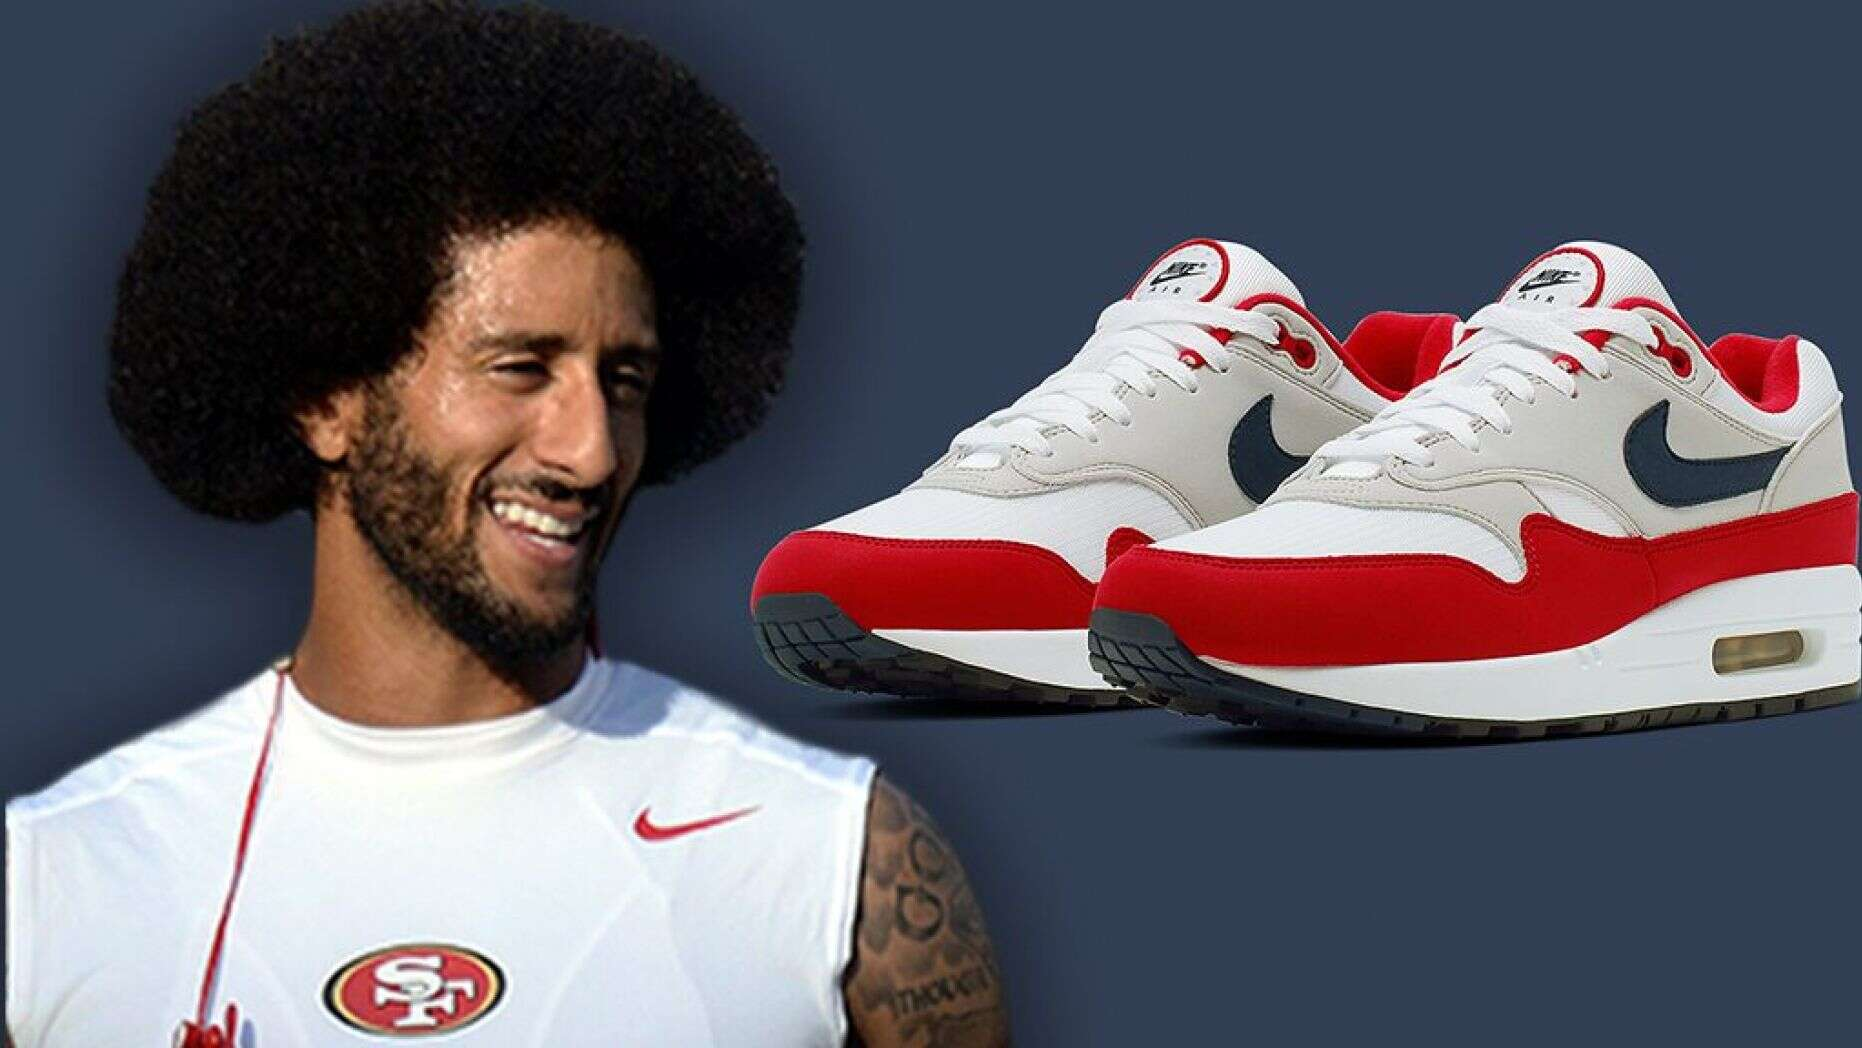 Nike dropped Betsy Ross-themed Fourth of July sneaker after Colin Kaepernick complained, report says